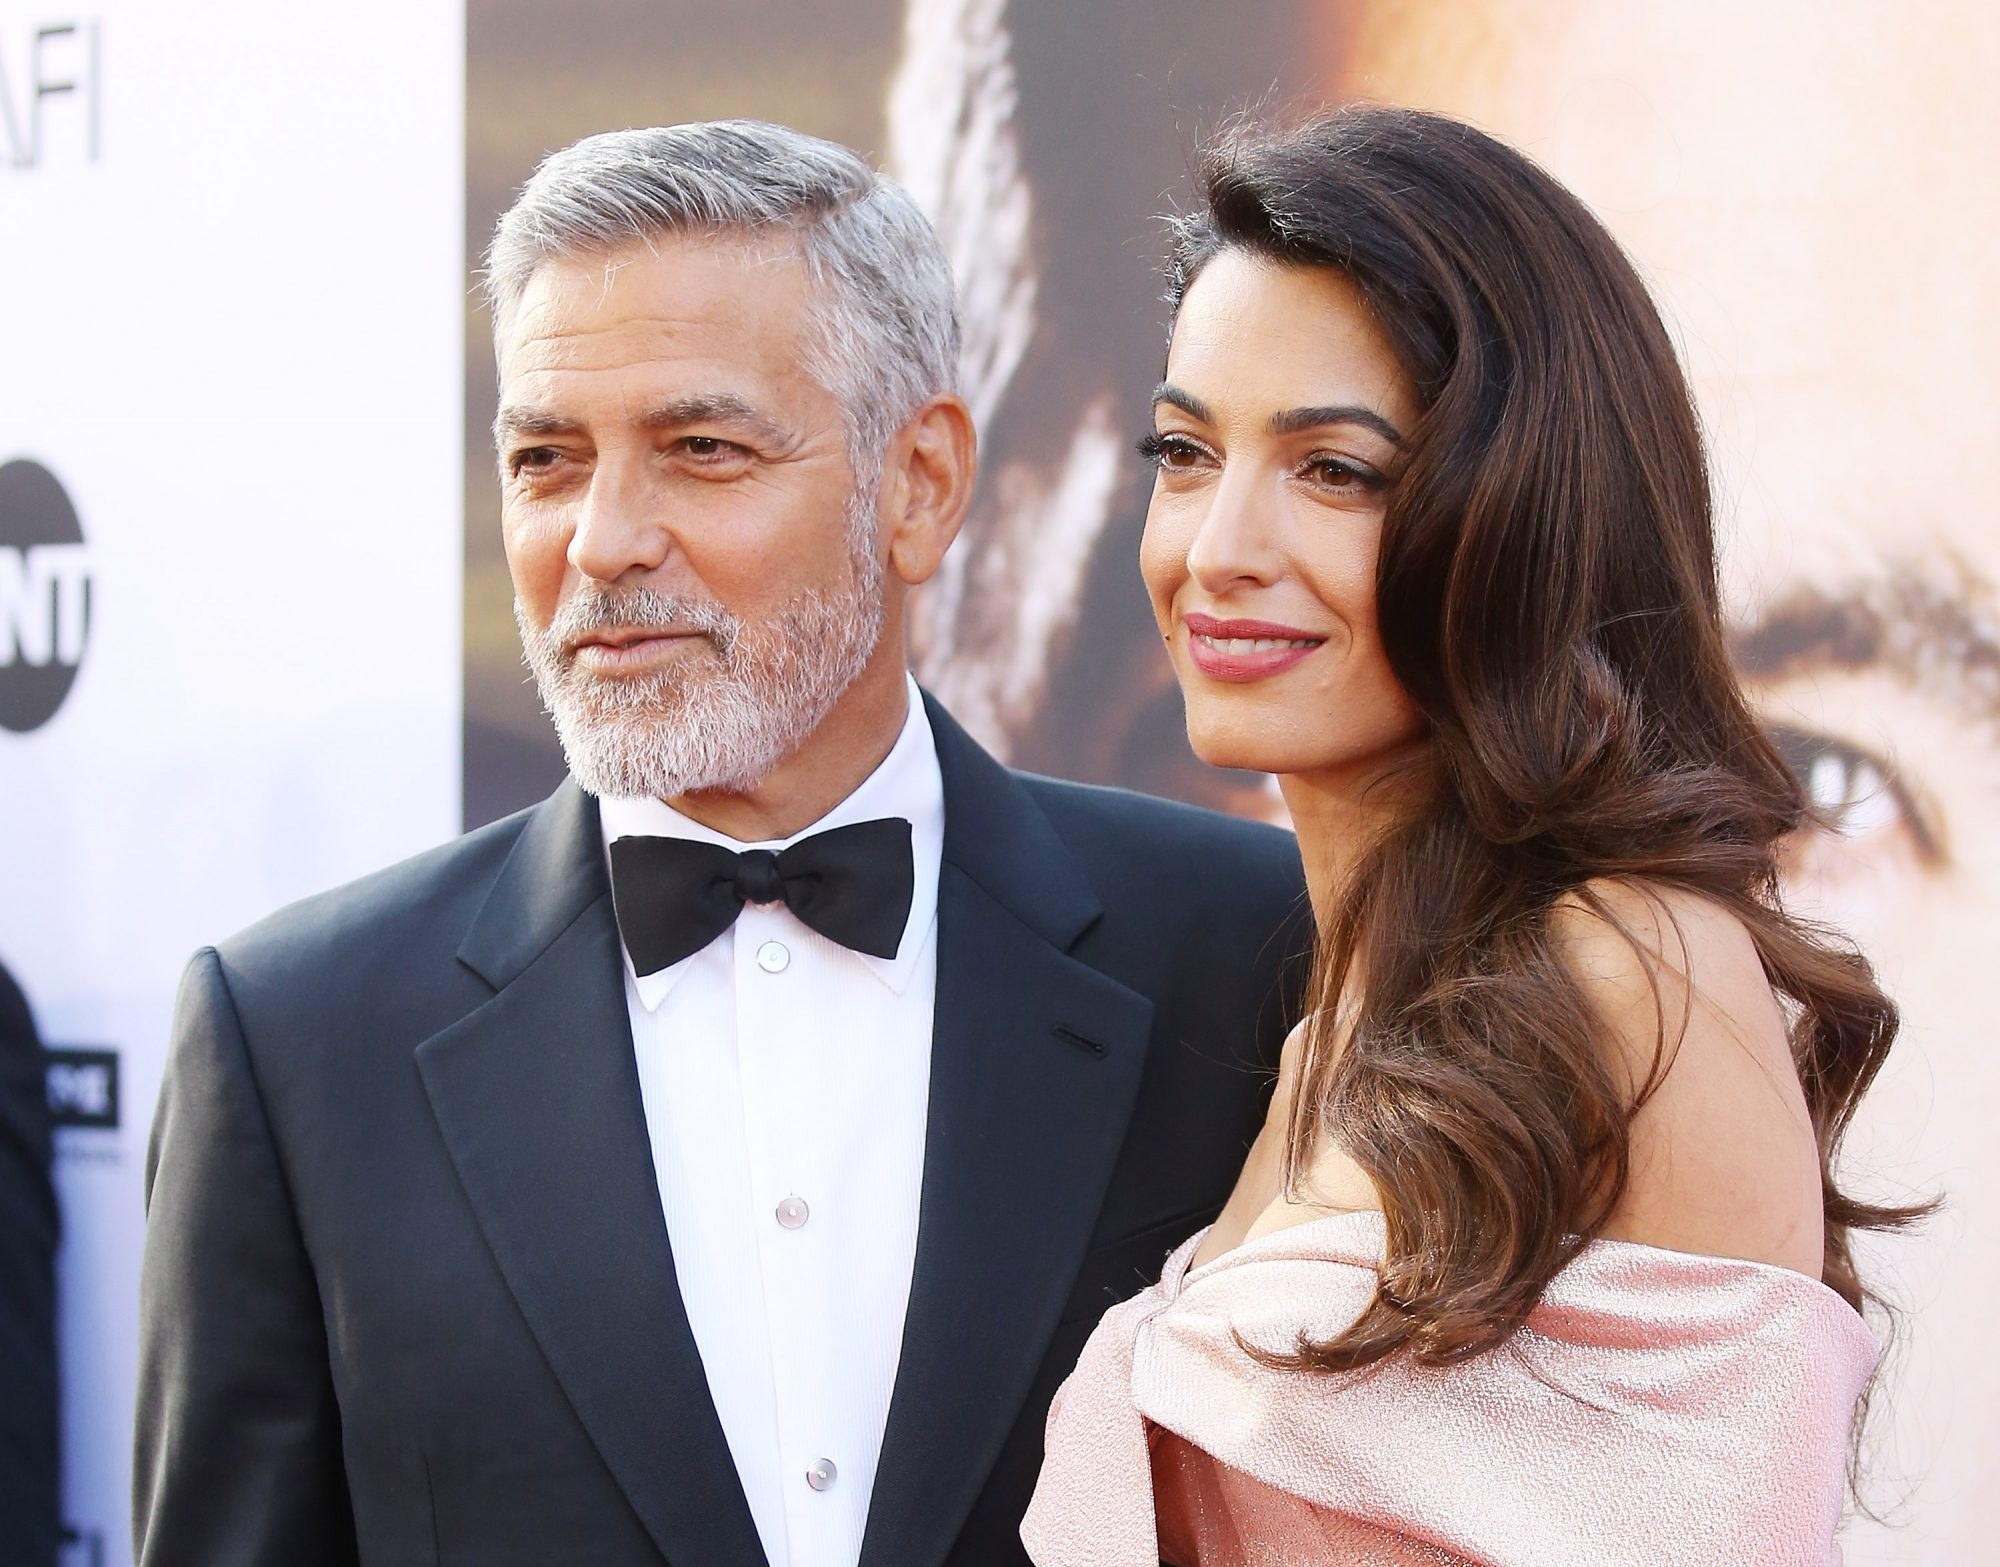 George Clooney and Amal Clooney at the American Film Institute's 46th Life Achievement Award Gala Tribute